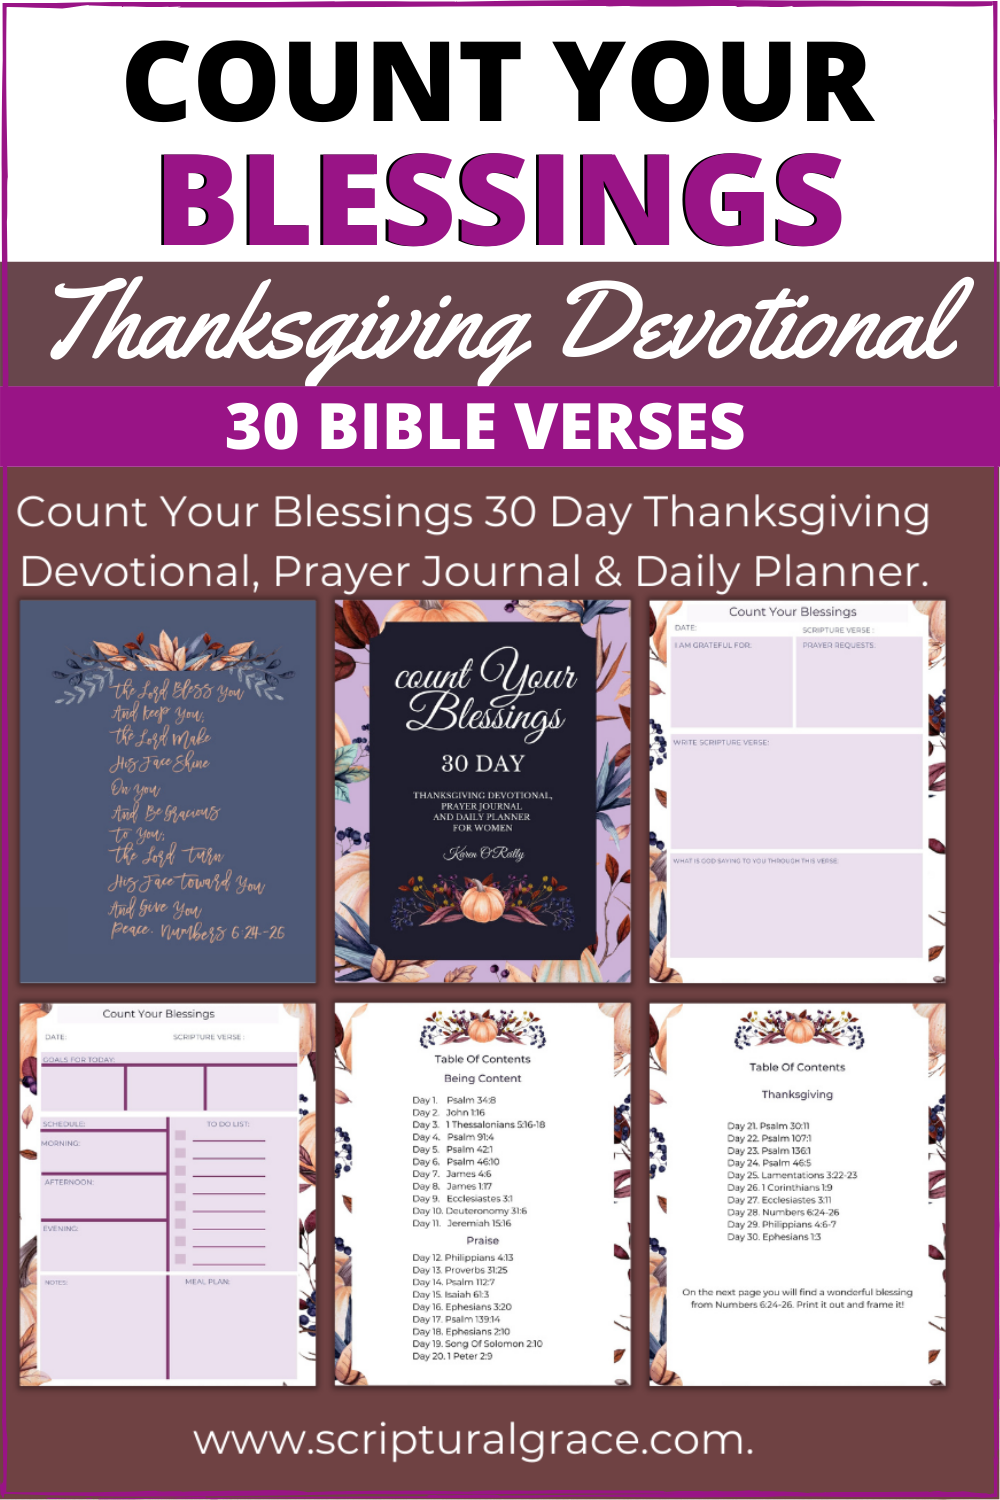 Count Your Blessings Thanksgiving Devotional And 30 Bible Verses For Thanksgiving